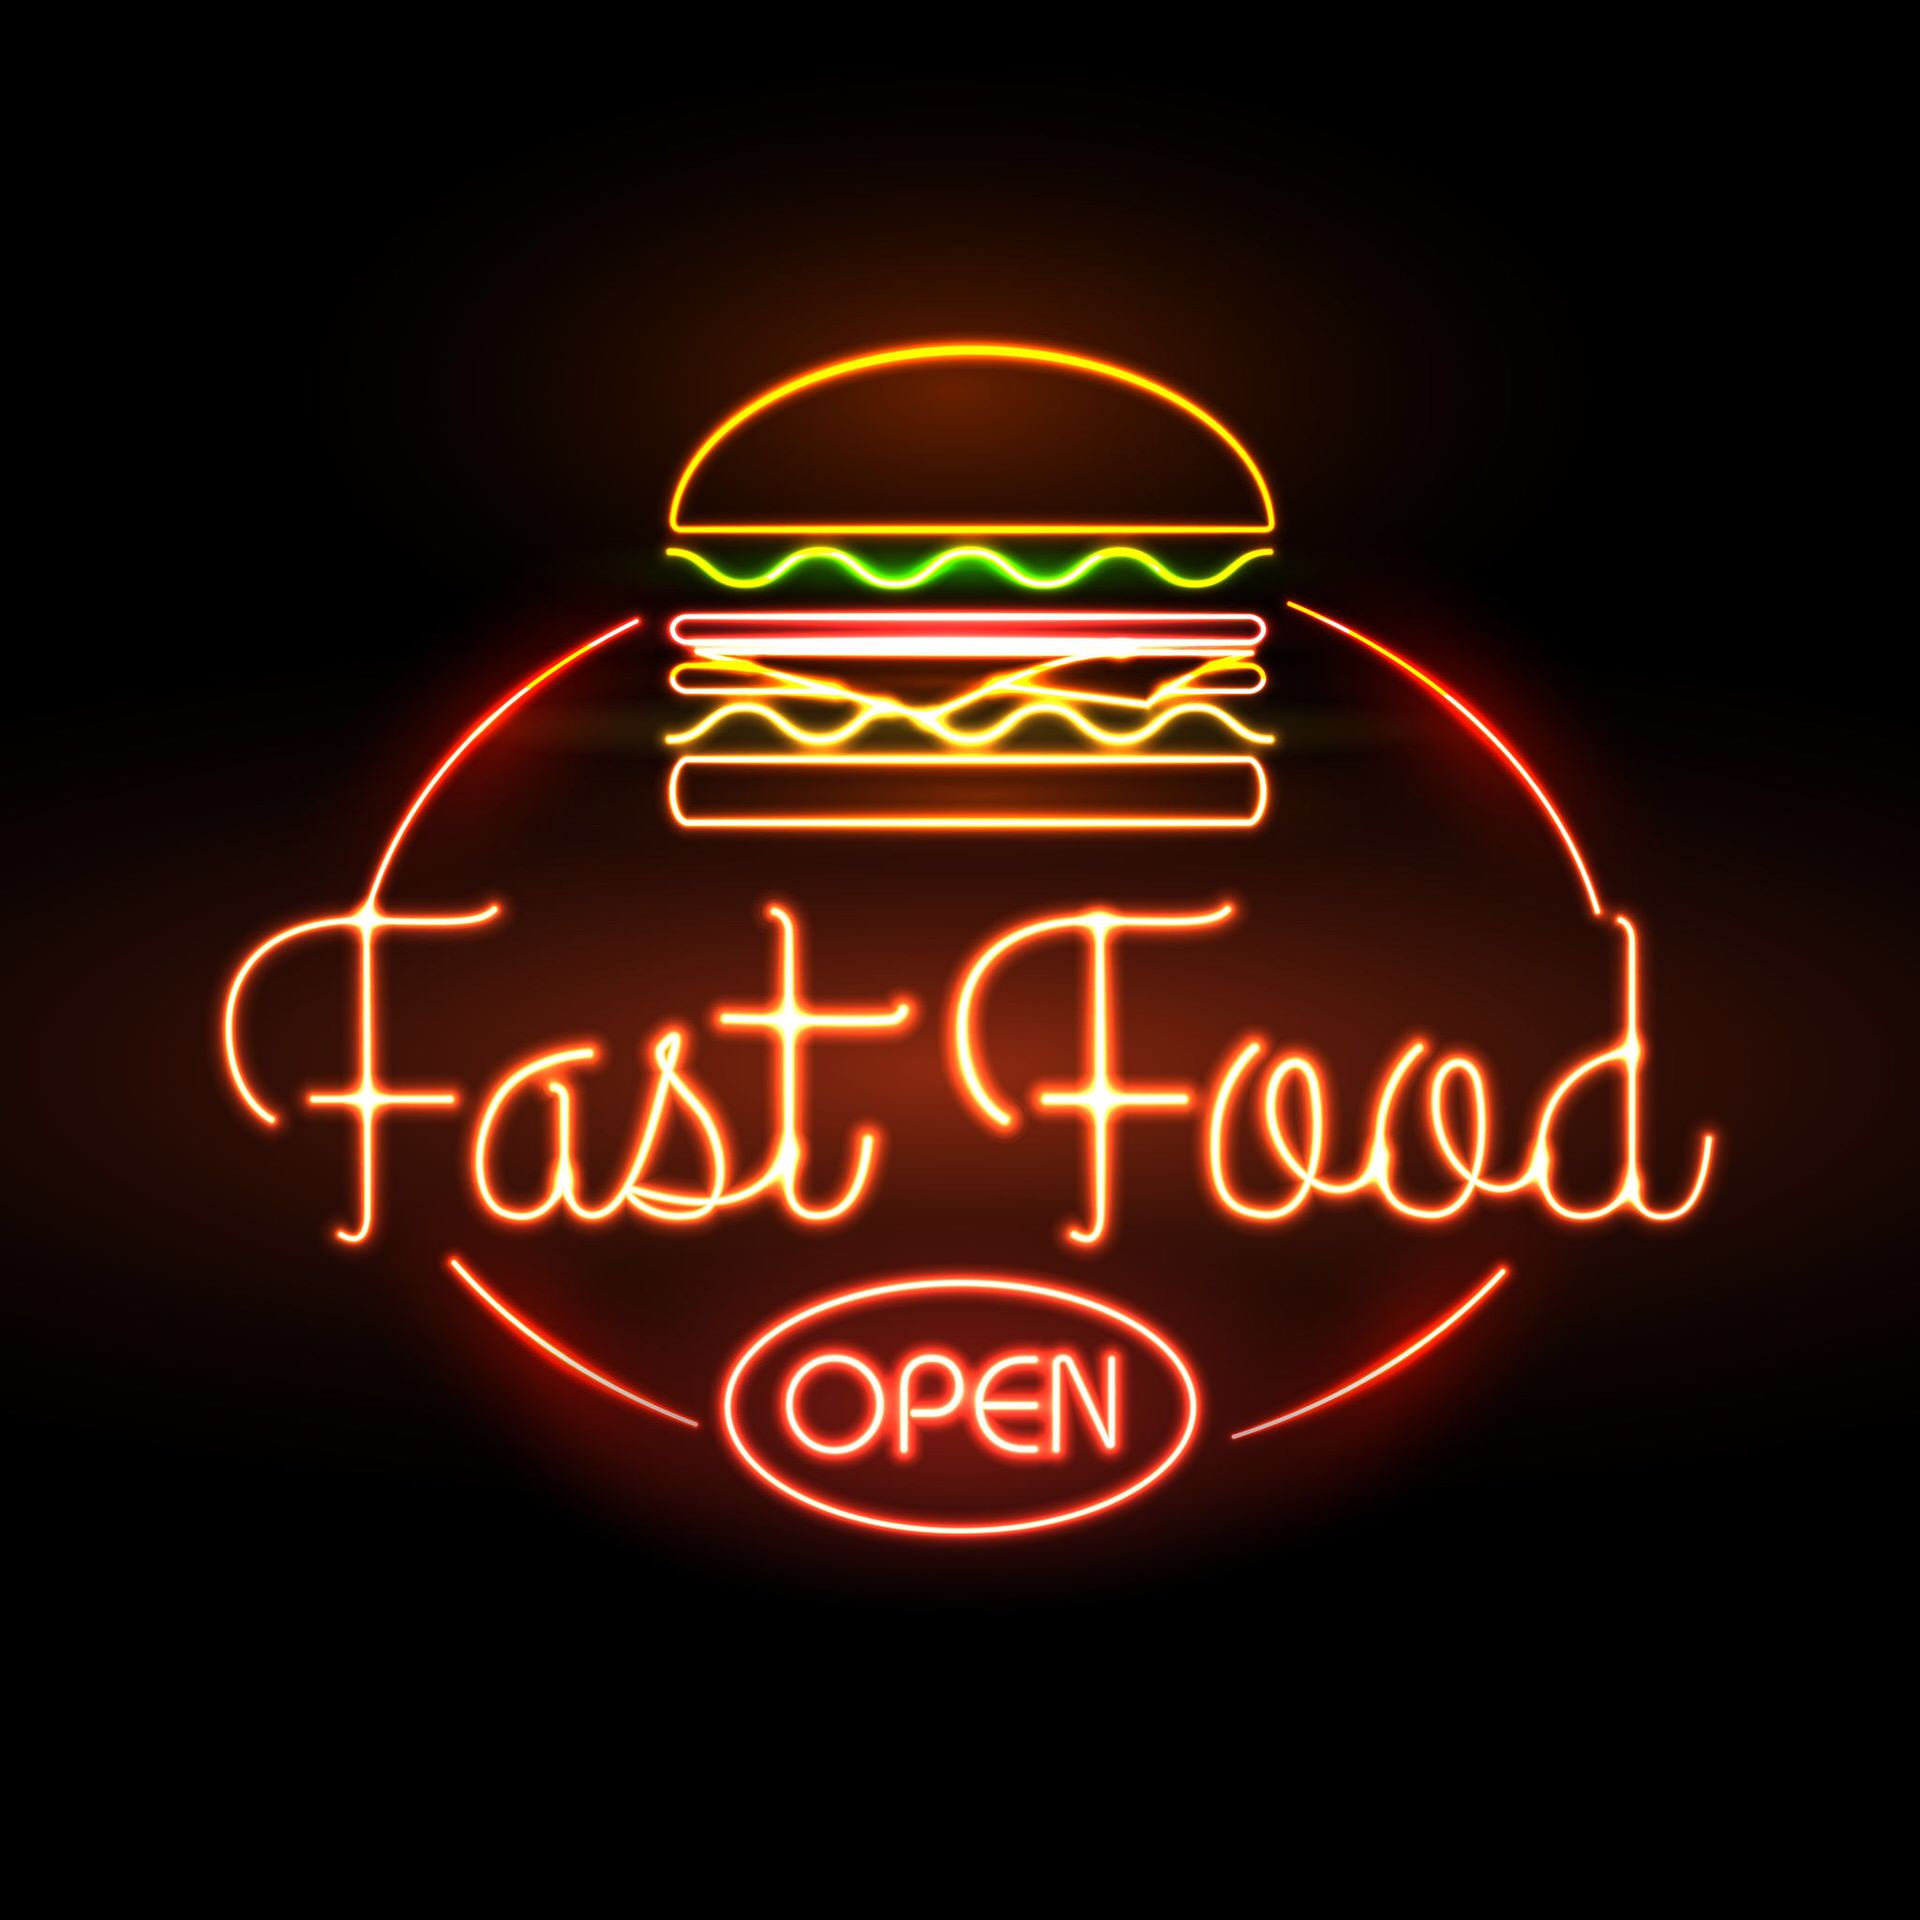 Fast Food Shop